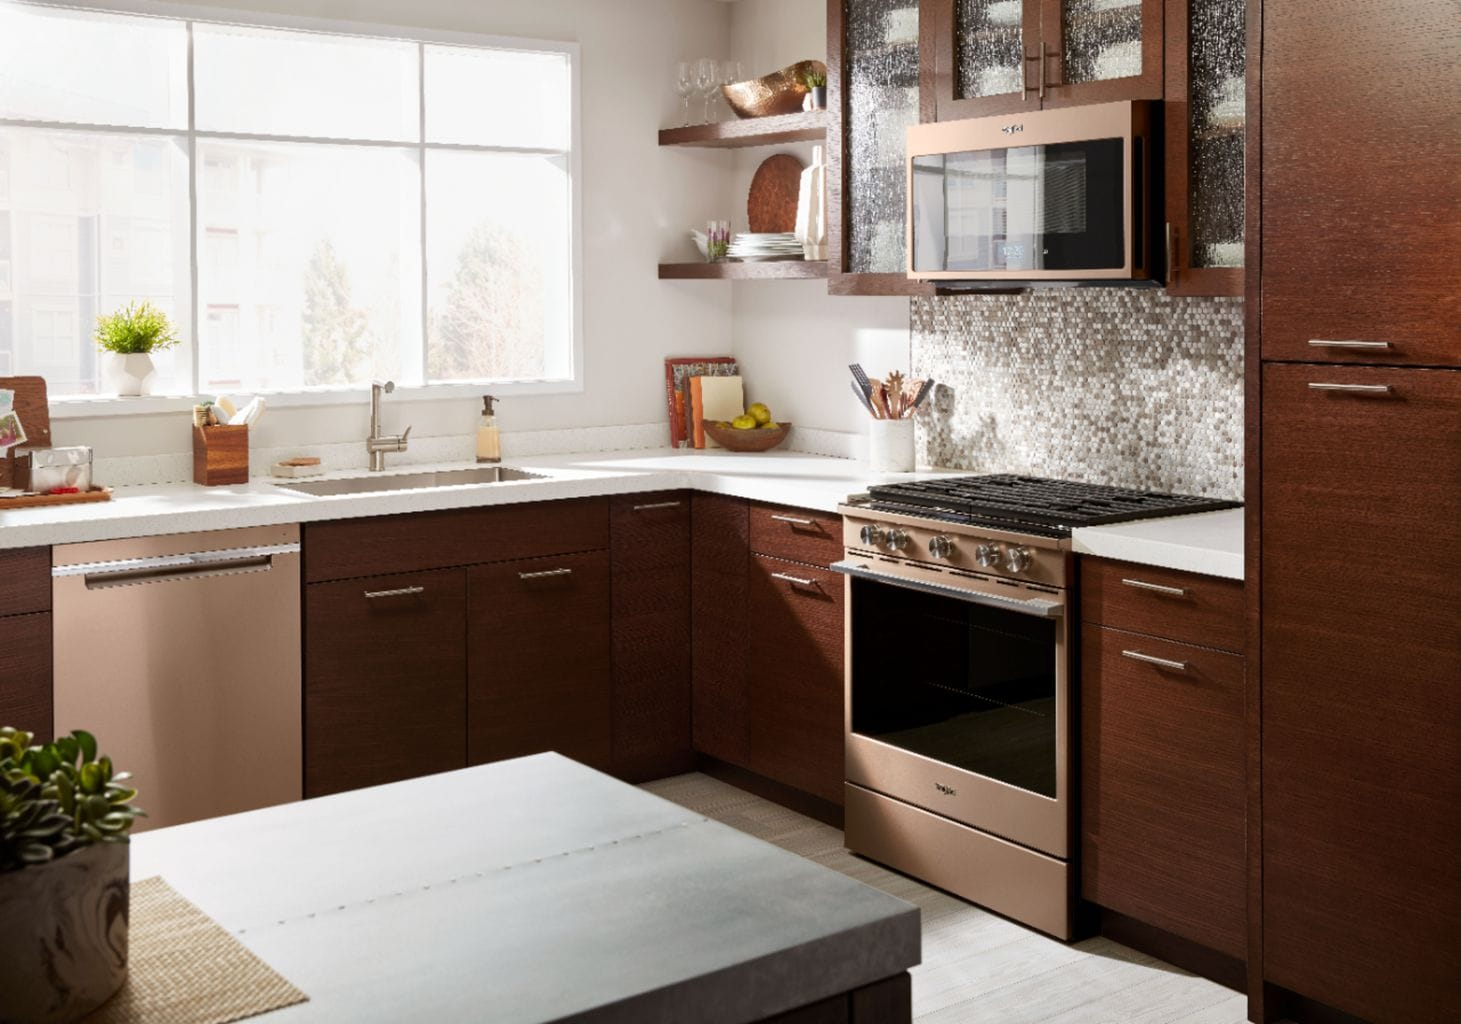 Whirlpool Convection Over-the-Range Microwave